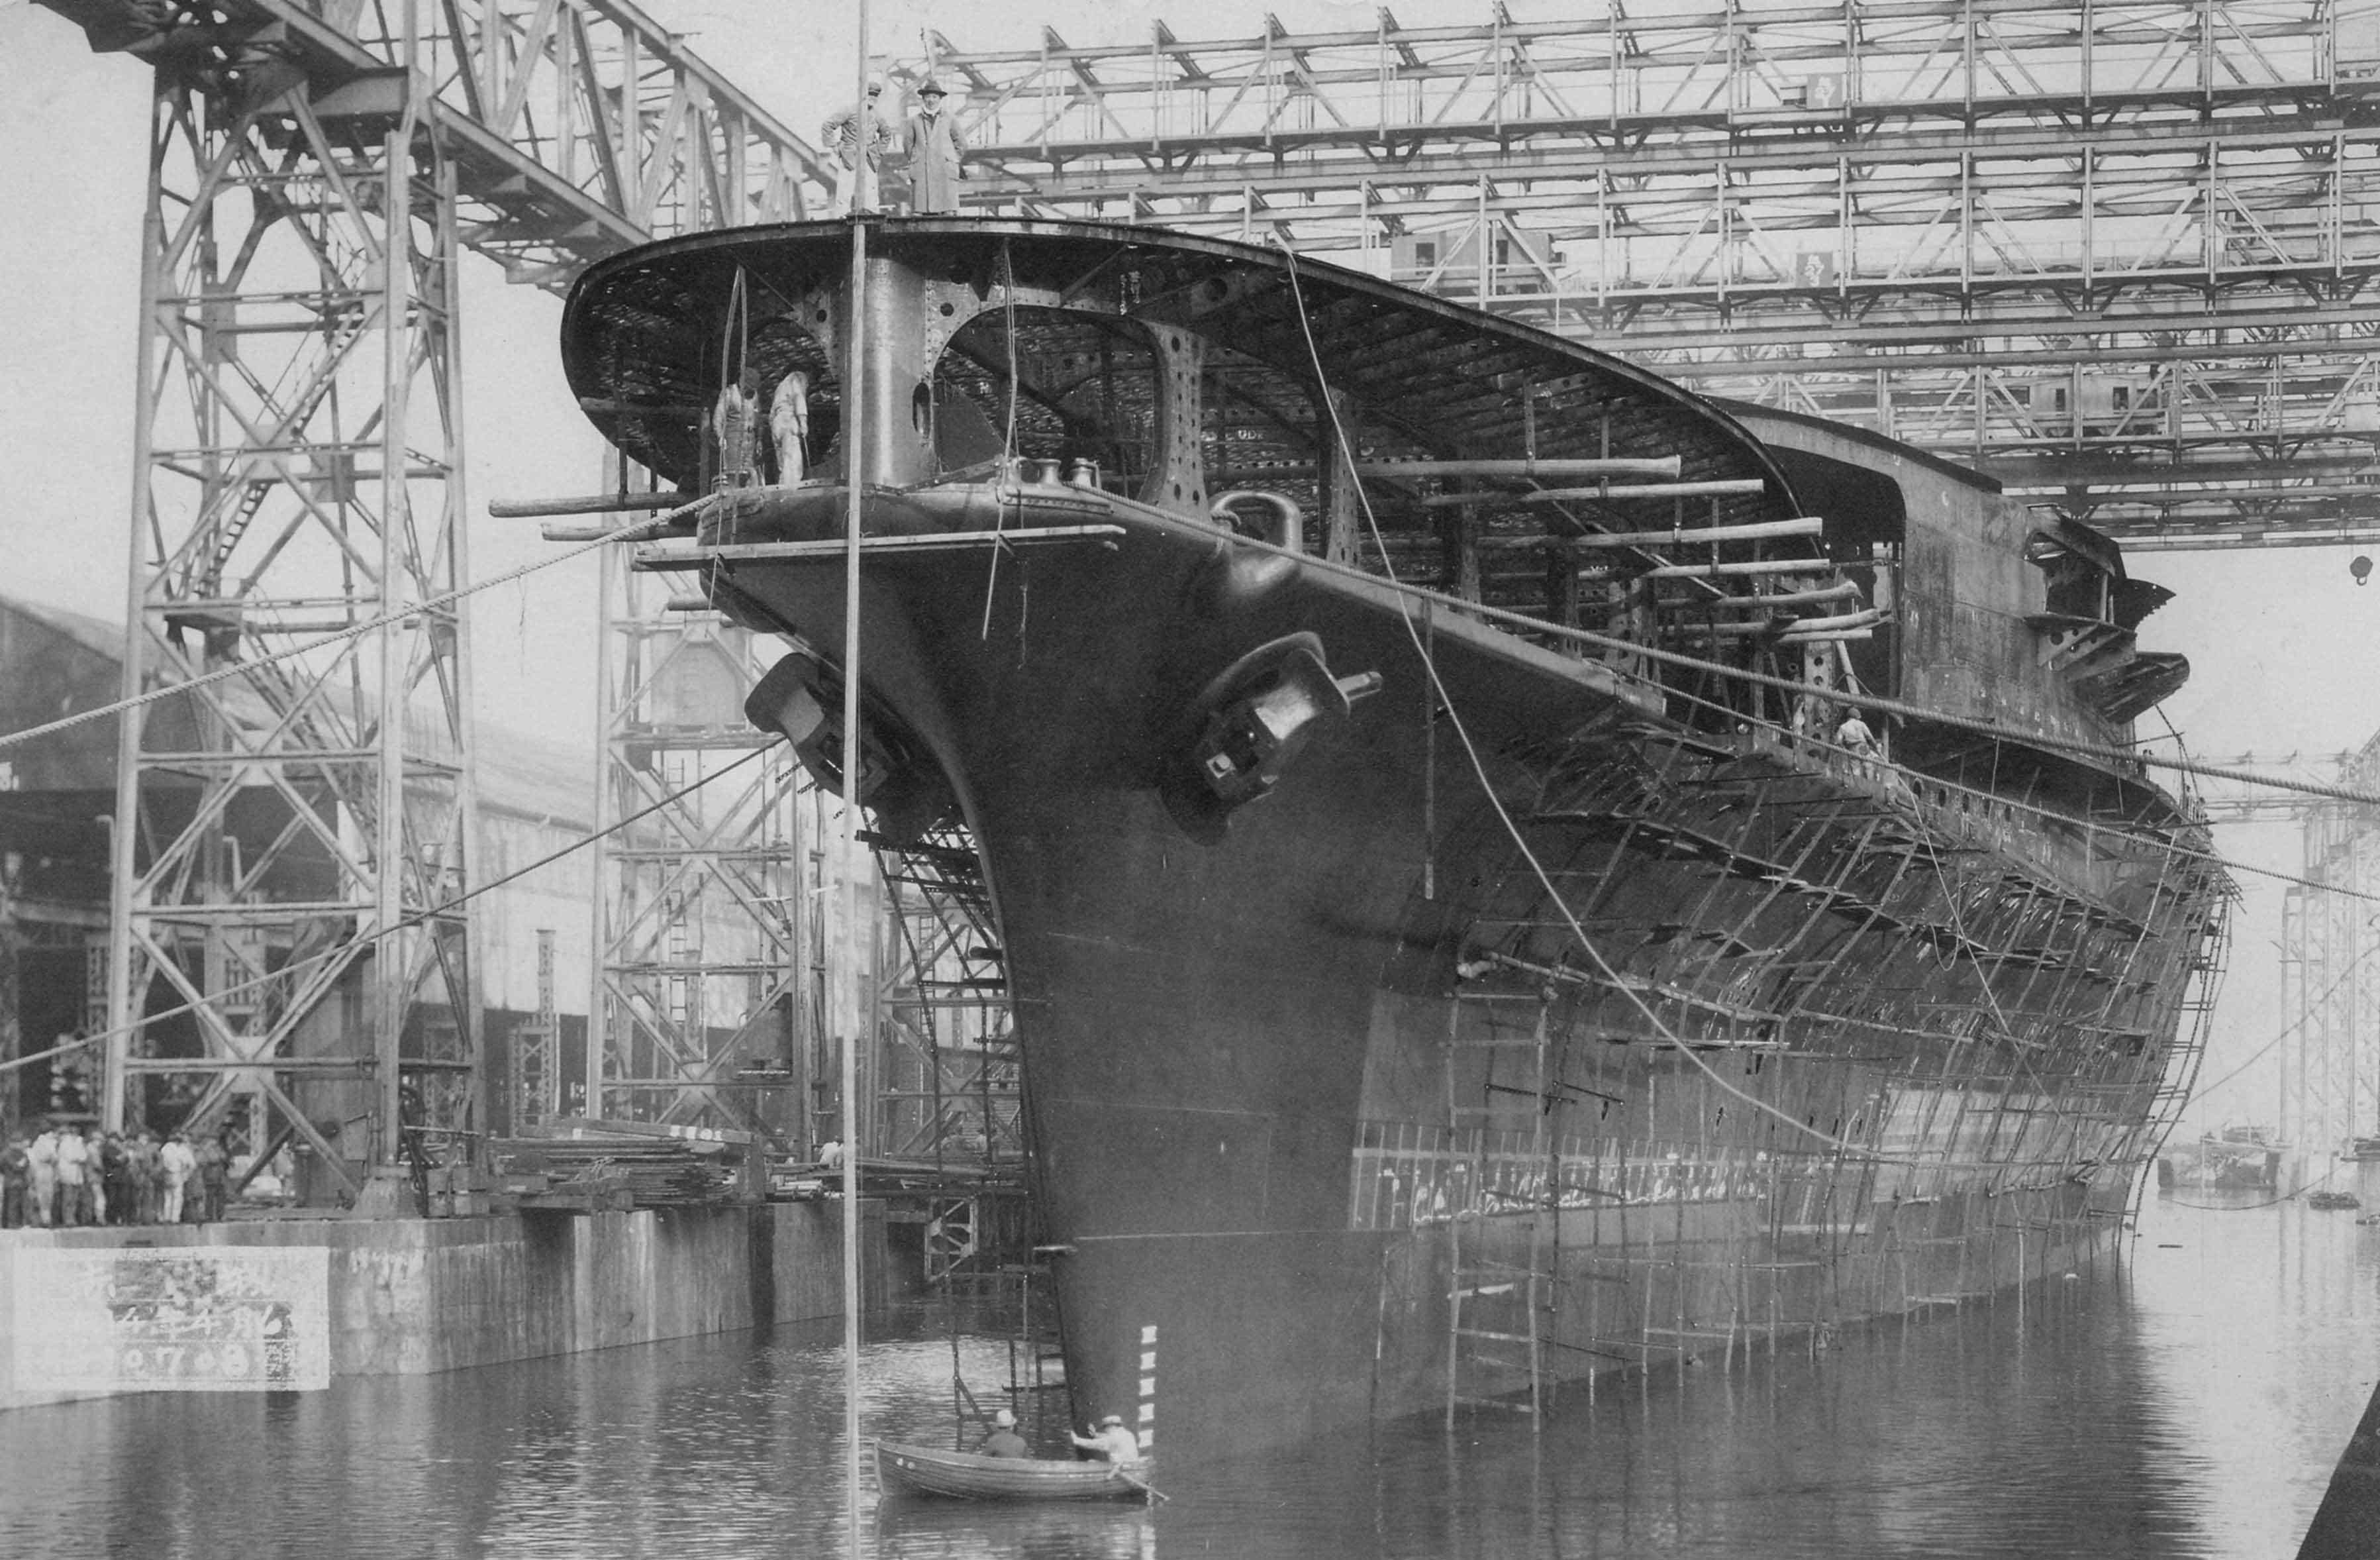 Unfinished hull of carrier Akagi after its launch near a dock.